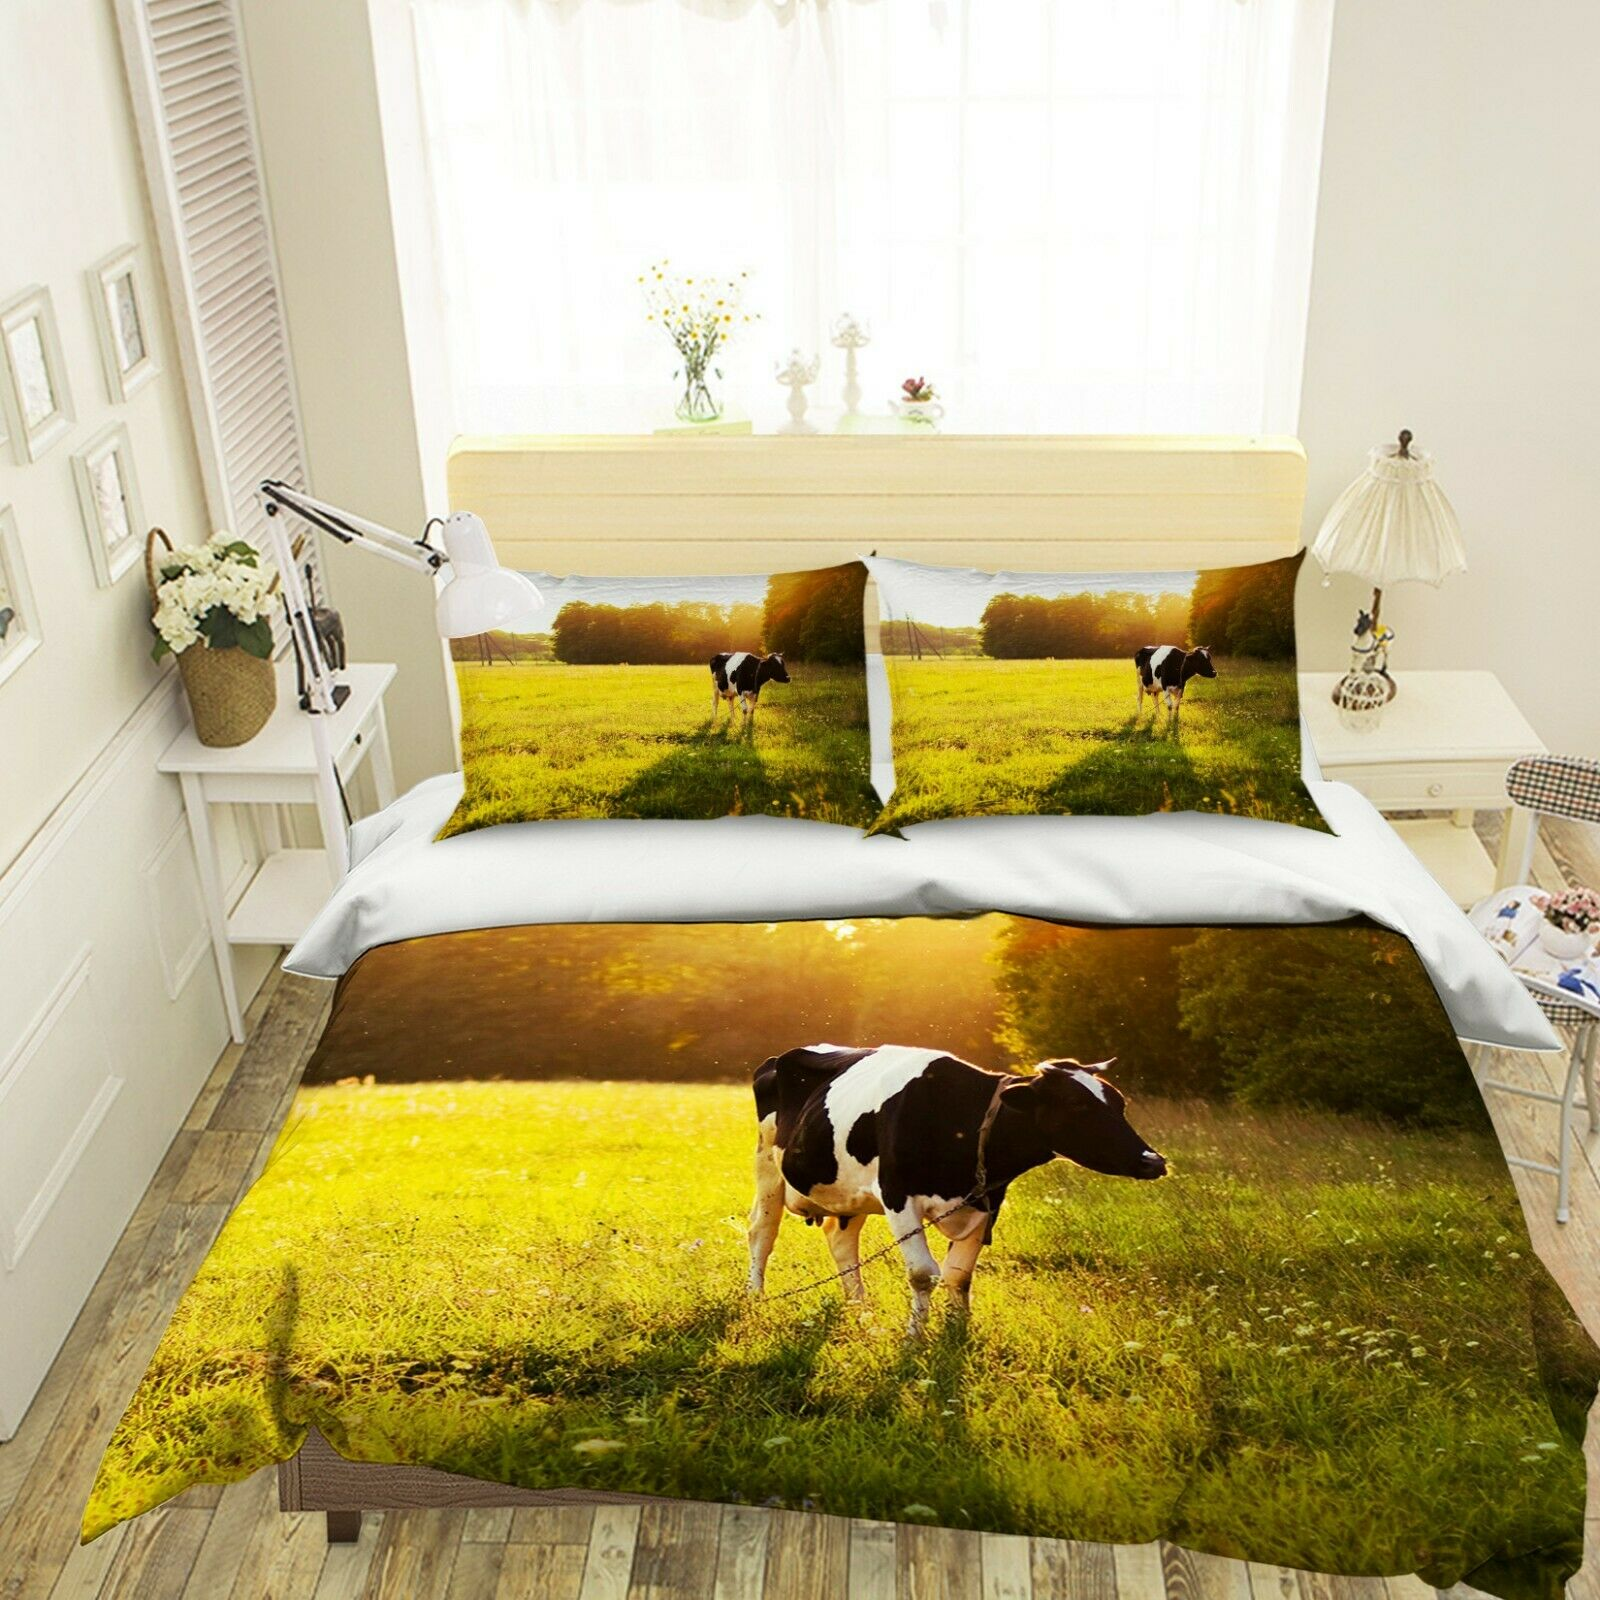 3D Mammal Cow N80 Animal Bed Pillowcases Quilt Duvet Cover Queen King Amy